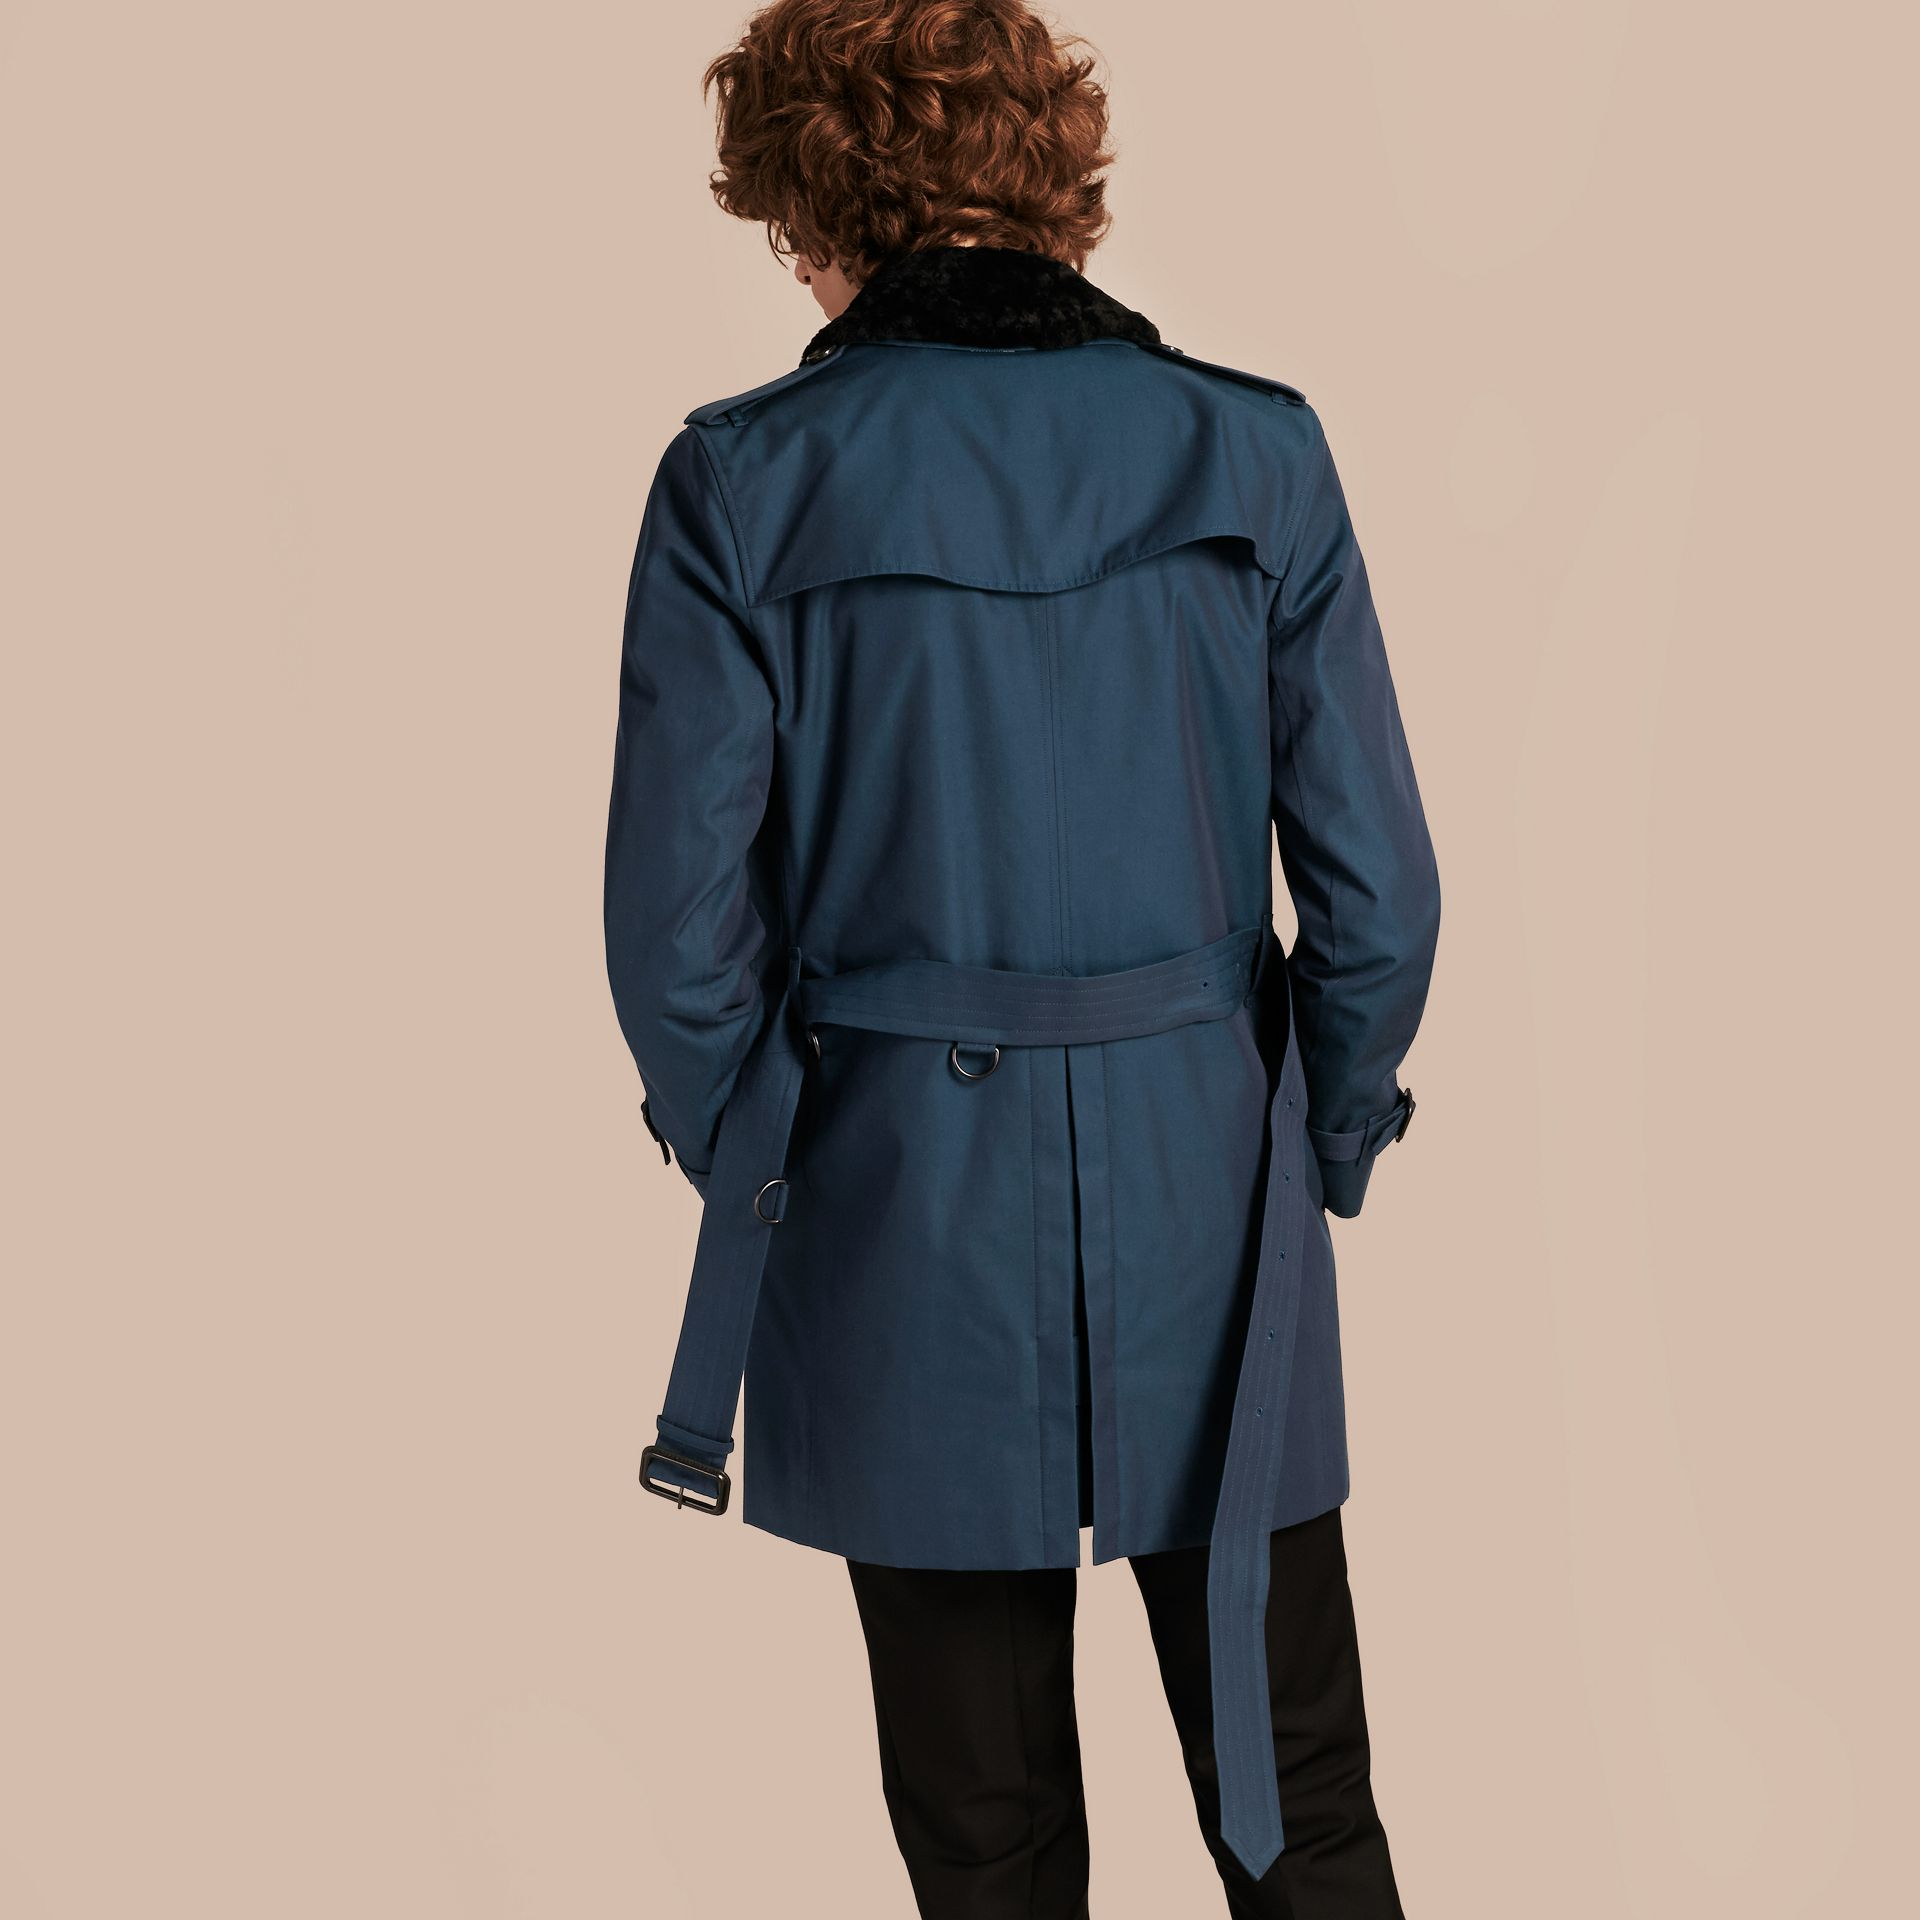 Teal blue Detachable Shearling Topcollar Cotton Gabardine Trench Coat with Warmer Teal Blue - gallery image 3